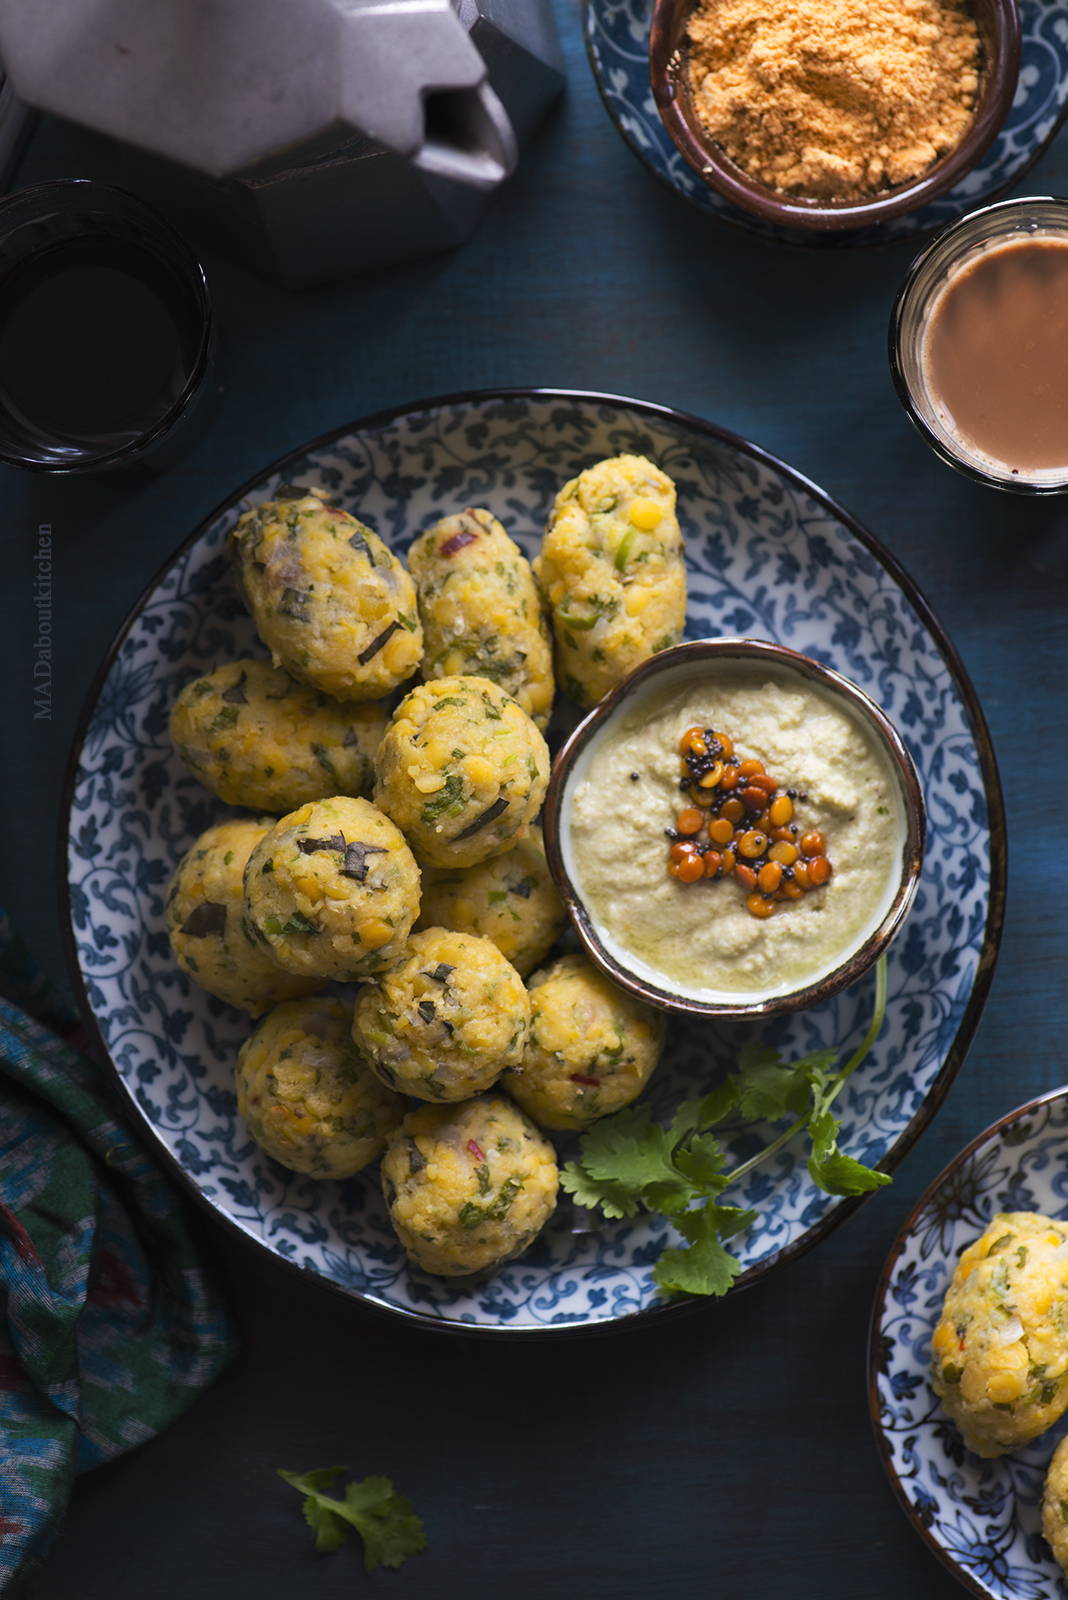 Nuchina Unde are Protein rich, steamed lentil balls. Nuchina Unde is perfect for early dinner or evening snack